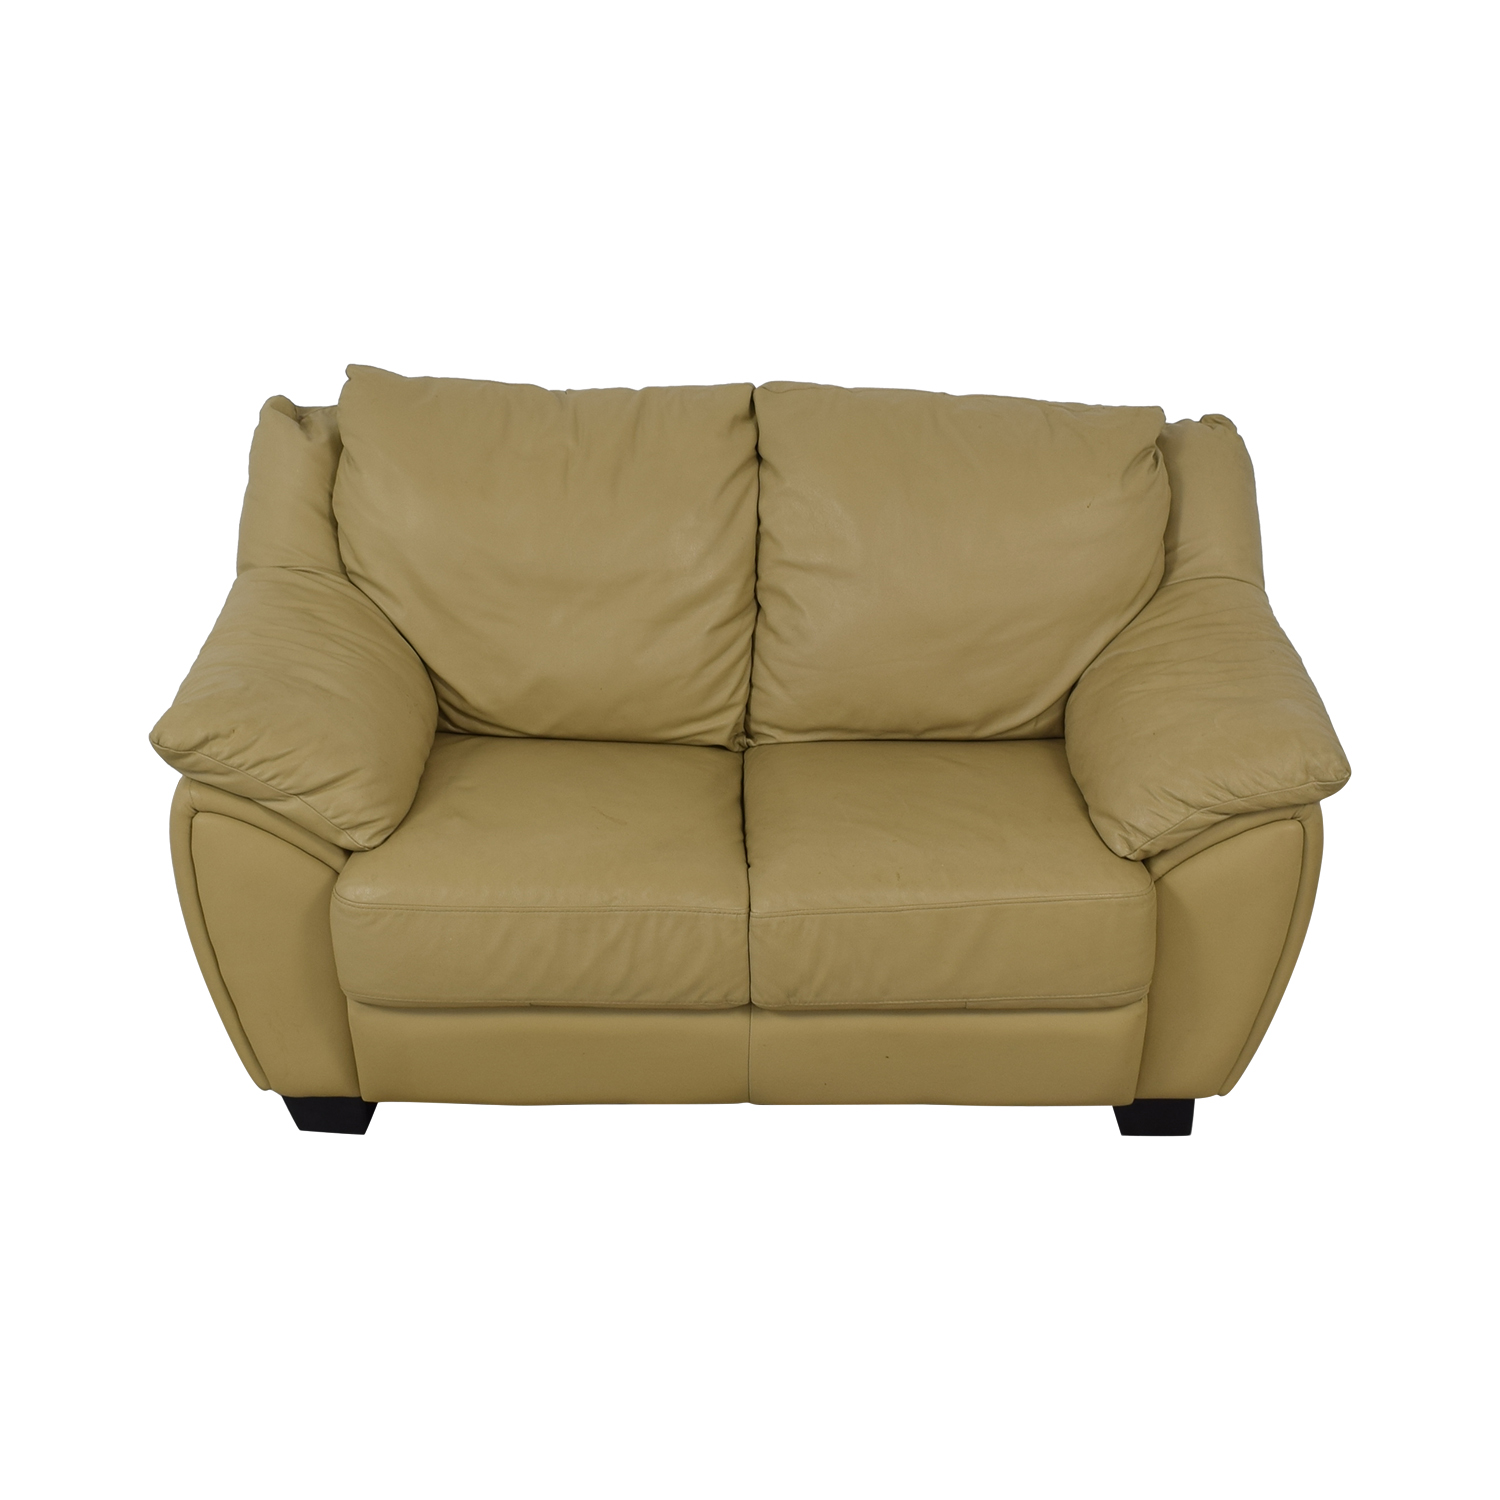 DeCoro DeCoro Leather Love Seat dimensions